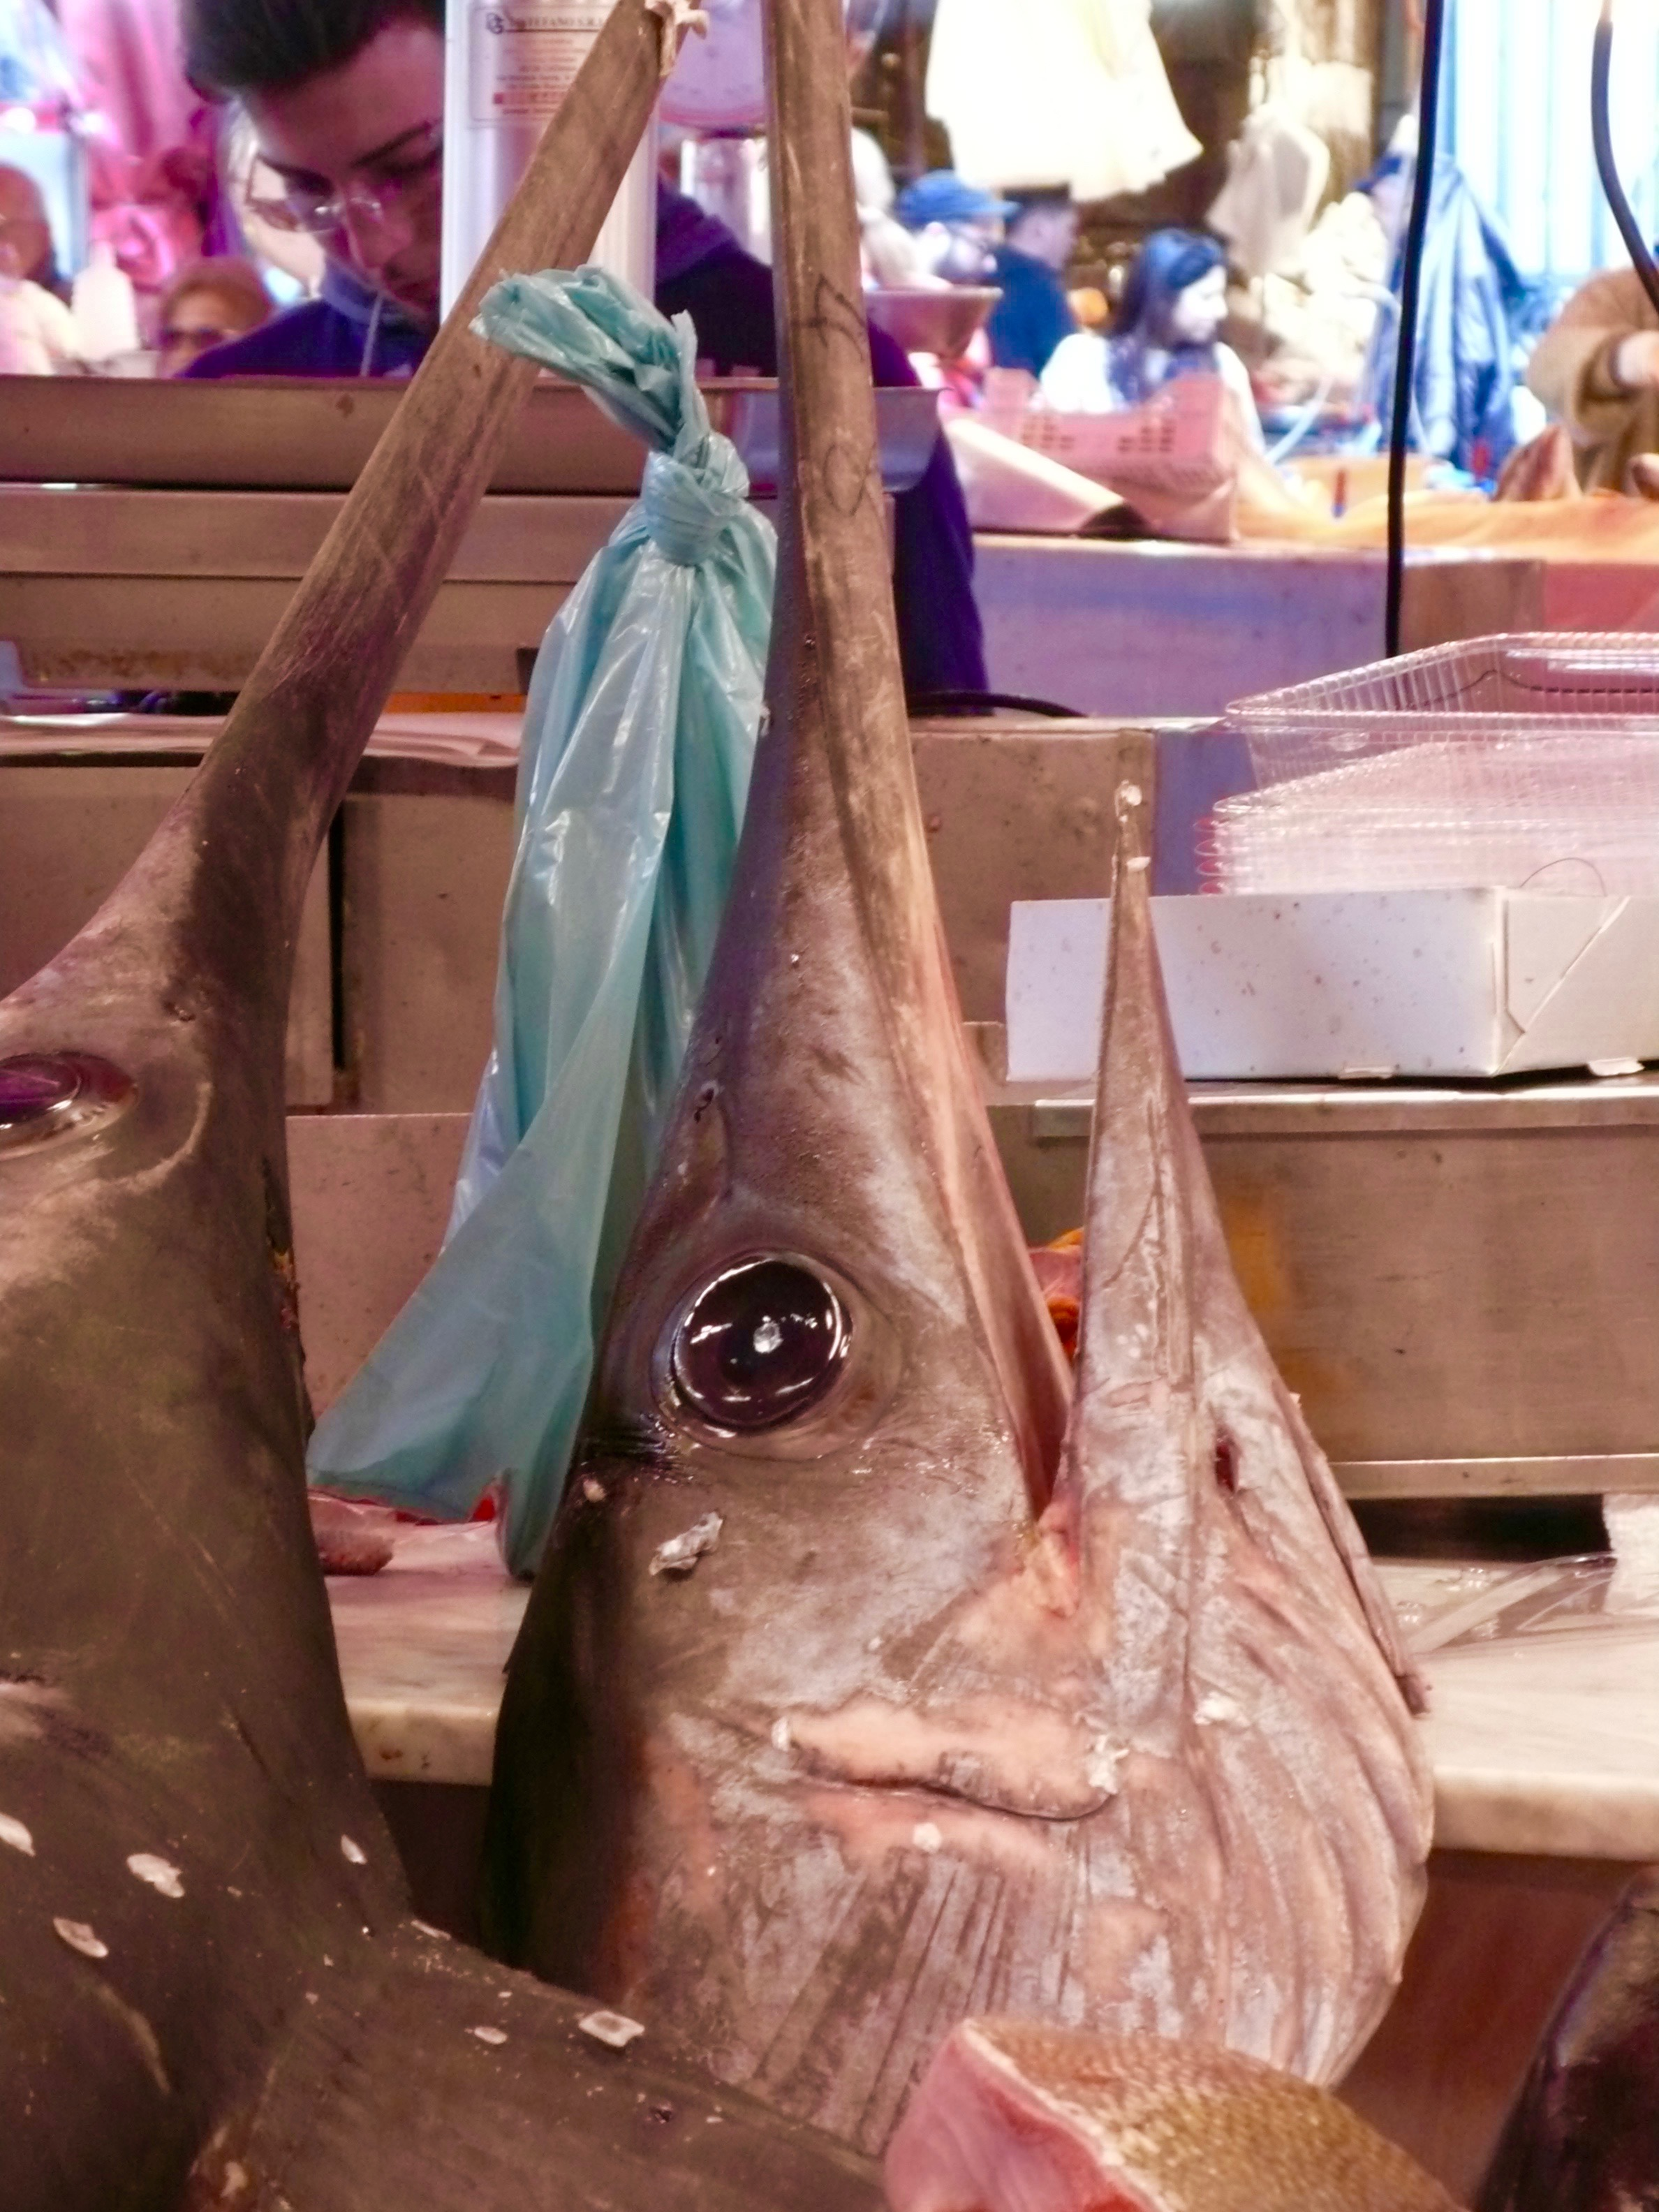 Enormous Pesce Spada (Sword Fish) in the Catania fish market